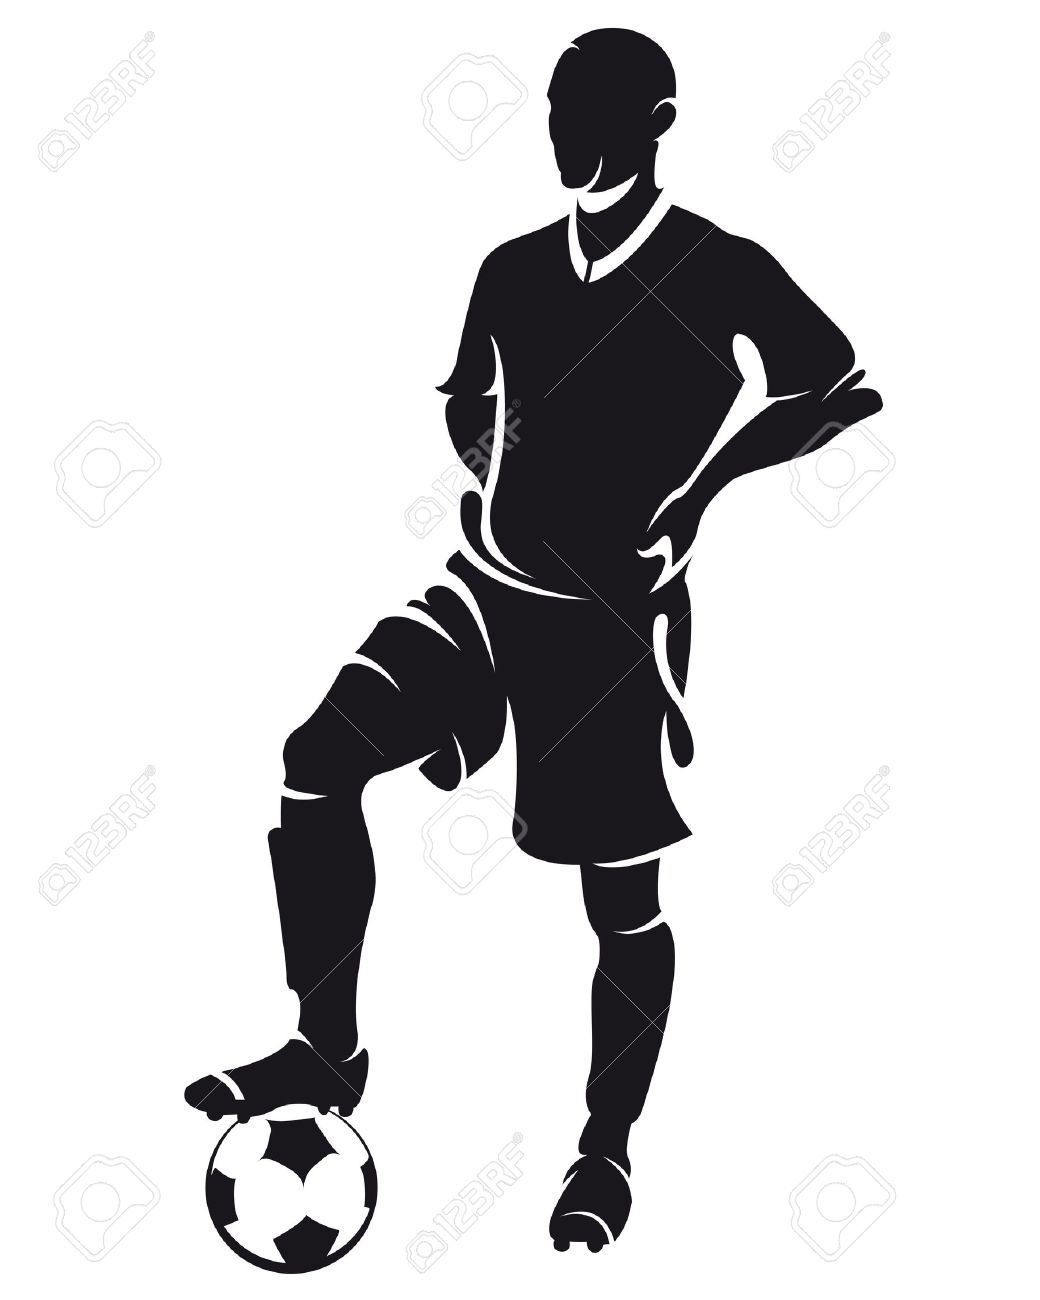 Vector Football Soccer Player Standing Silhouette With Ball